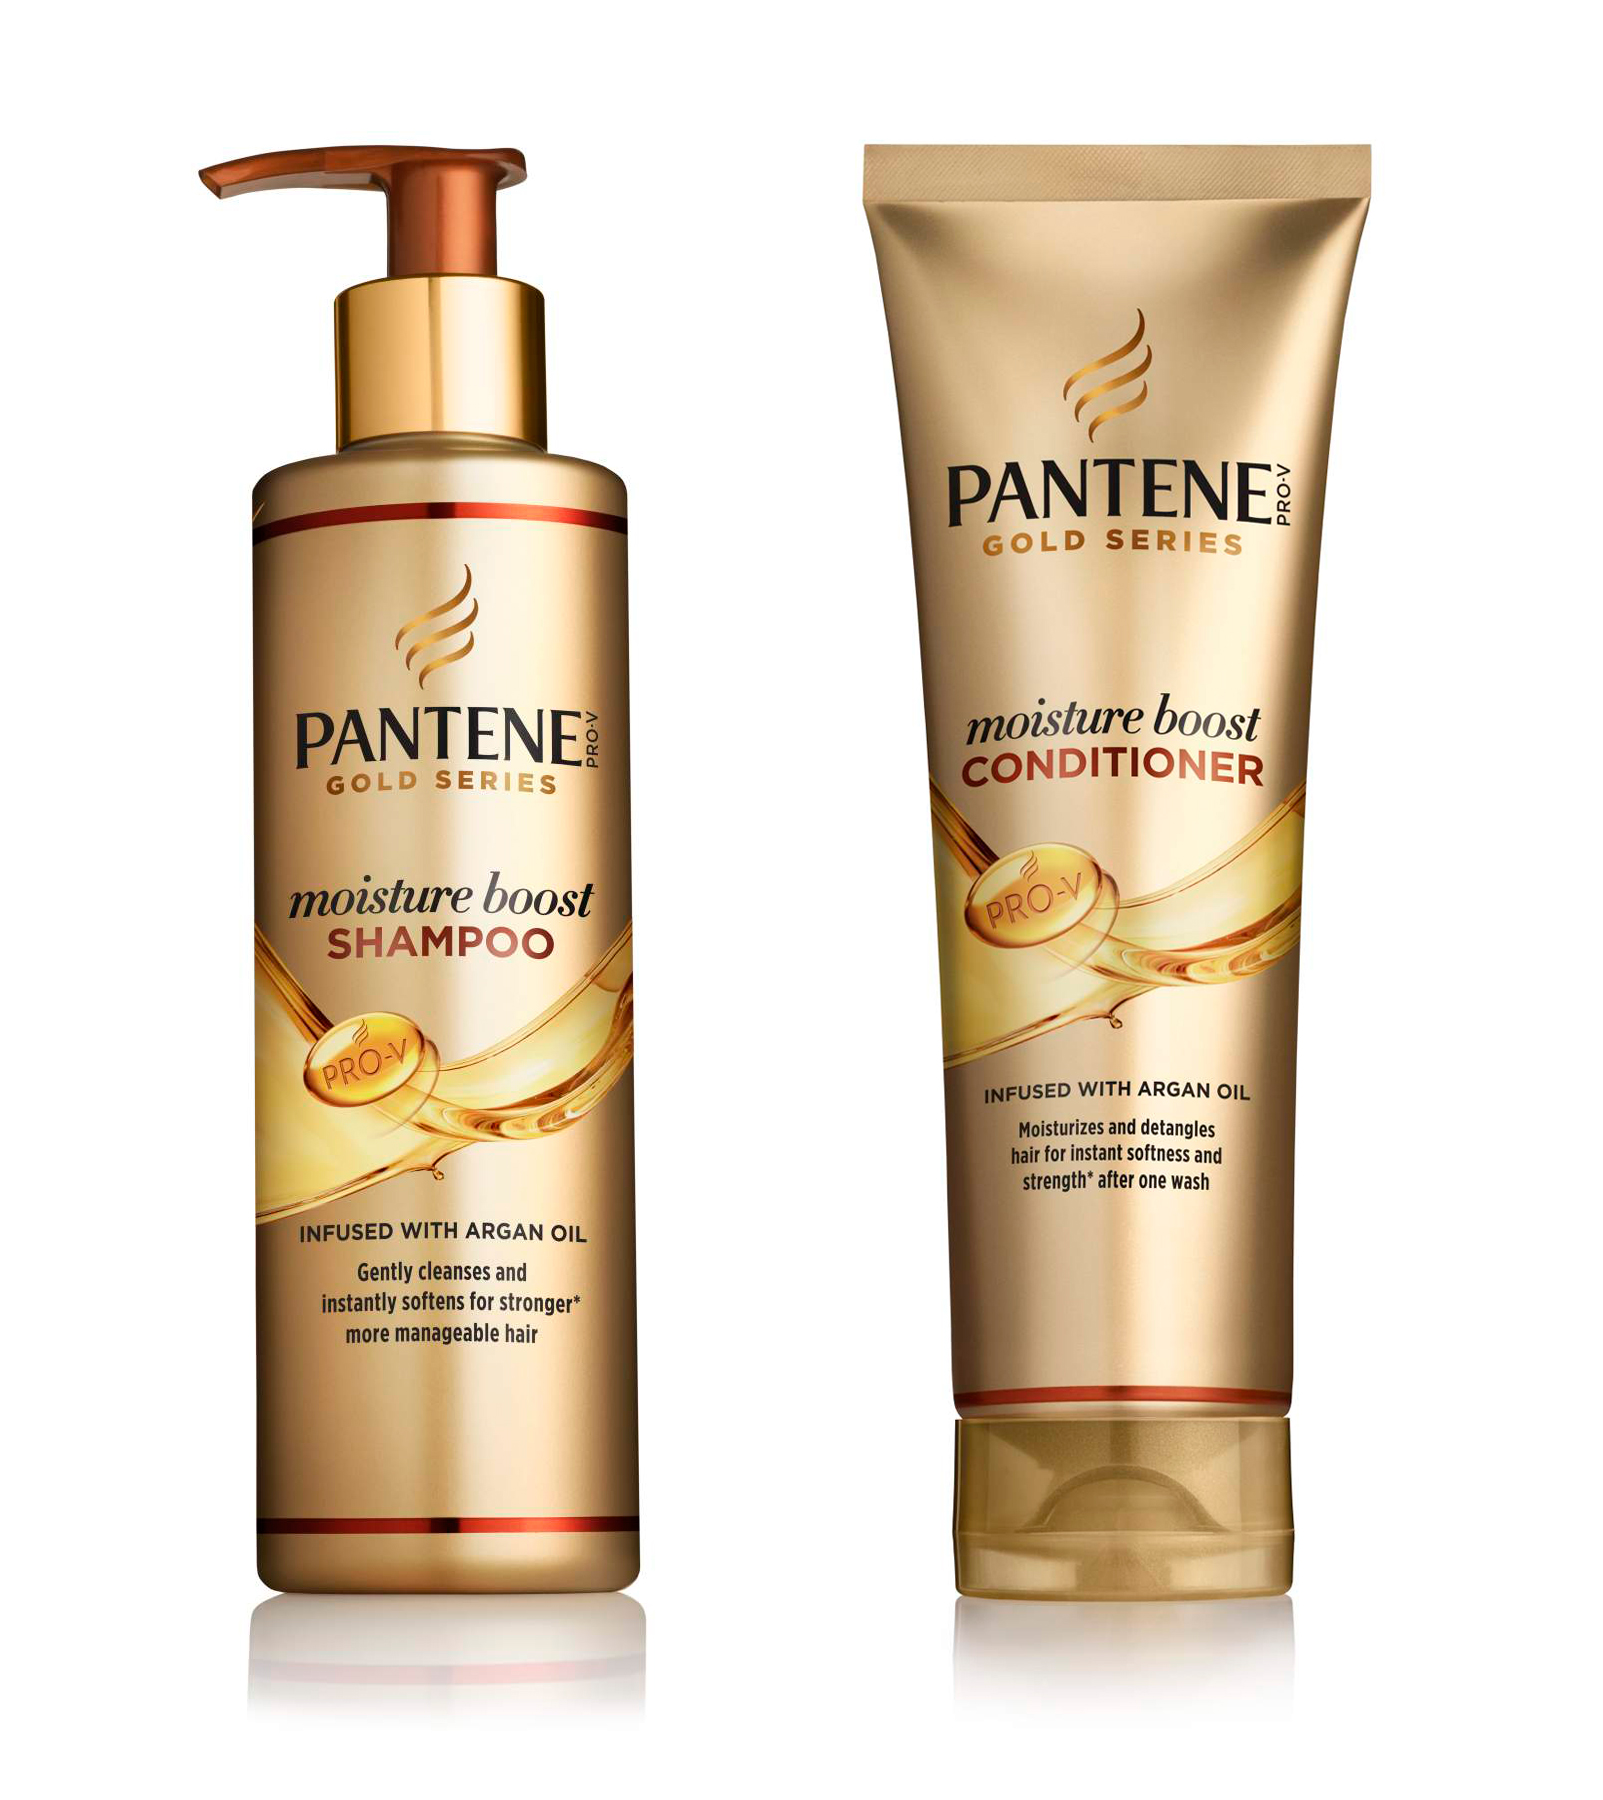 Pantene Gold Series Moisture Boost Conditioner product image